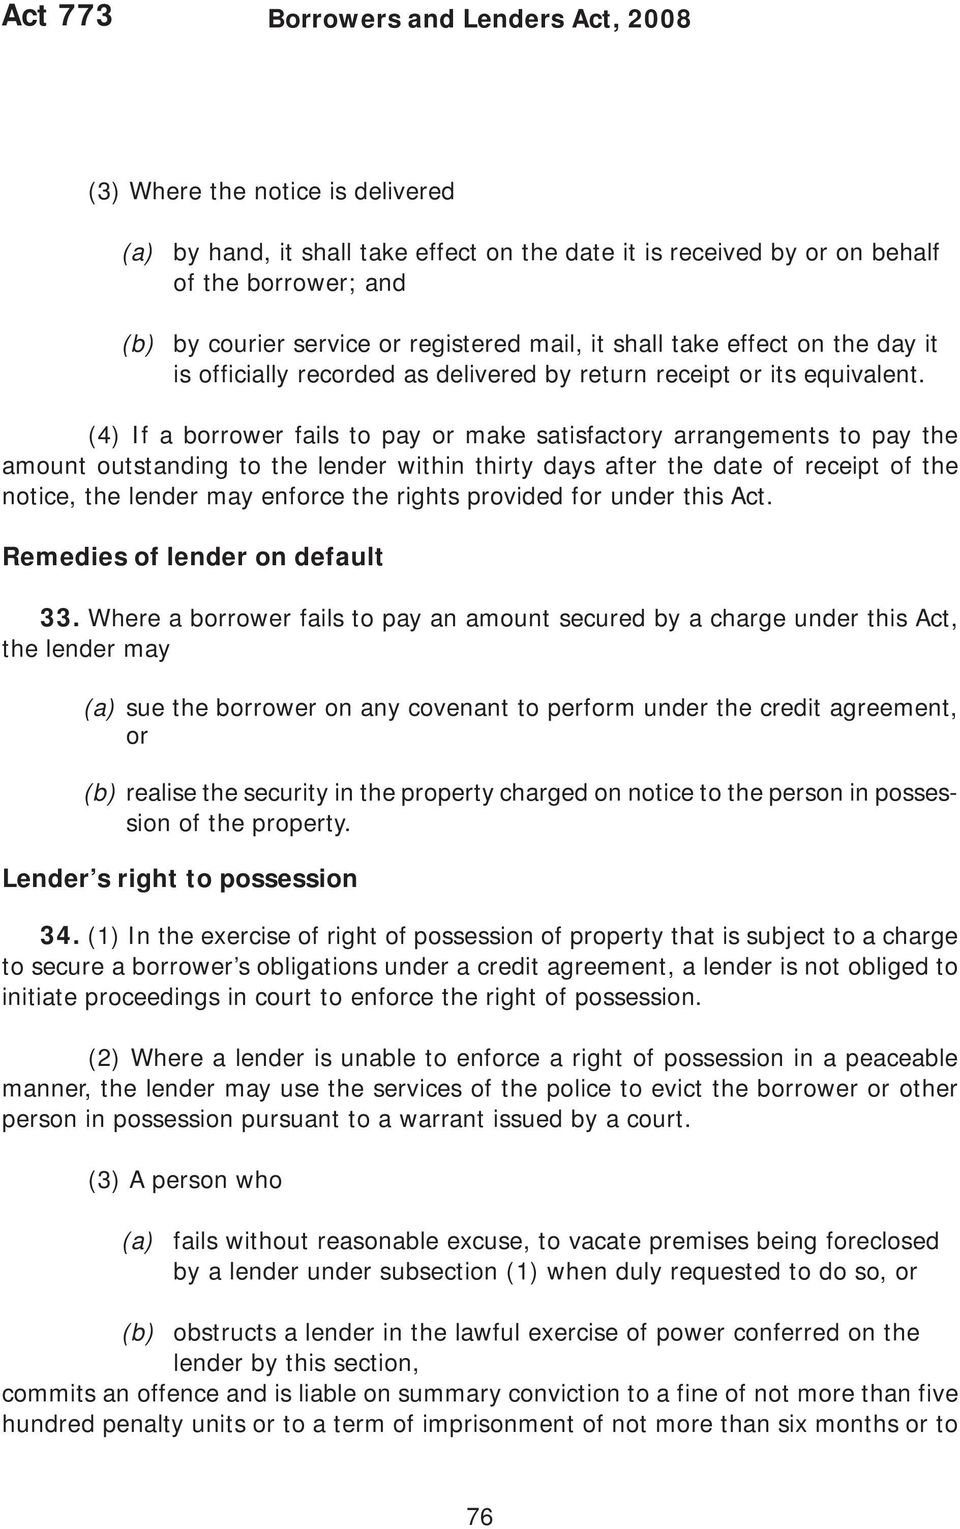 (4) If a borrower fails to pay or make satisfactory arrangements to pay the amount outstanding to the lender within thirty days after the date of receipt of the notice, the lender may enforce the